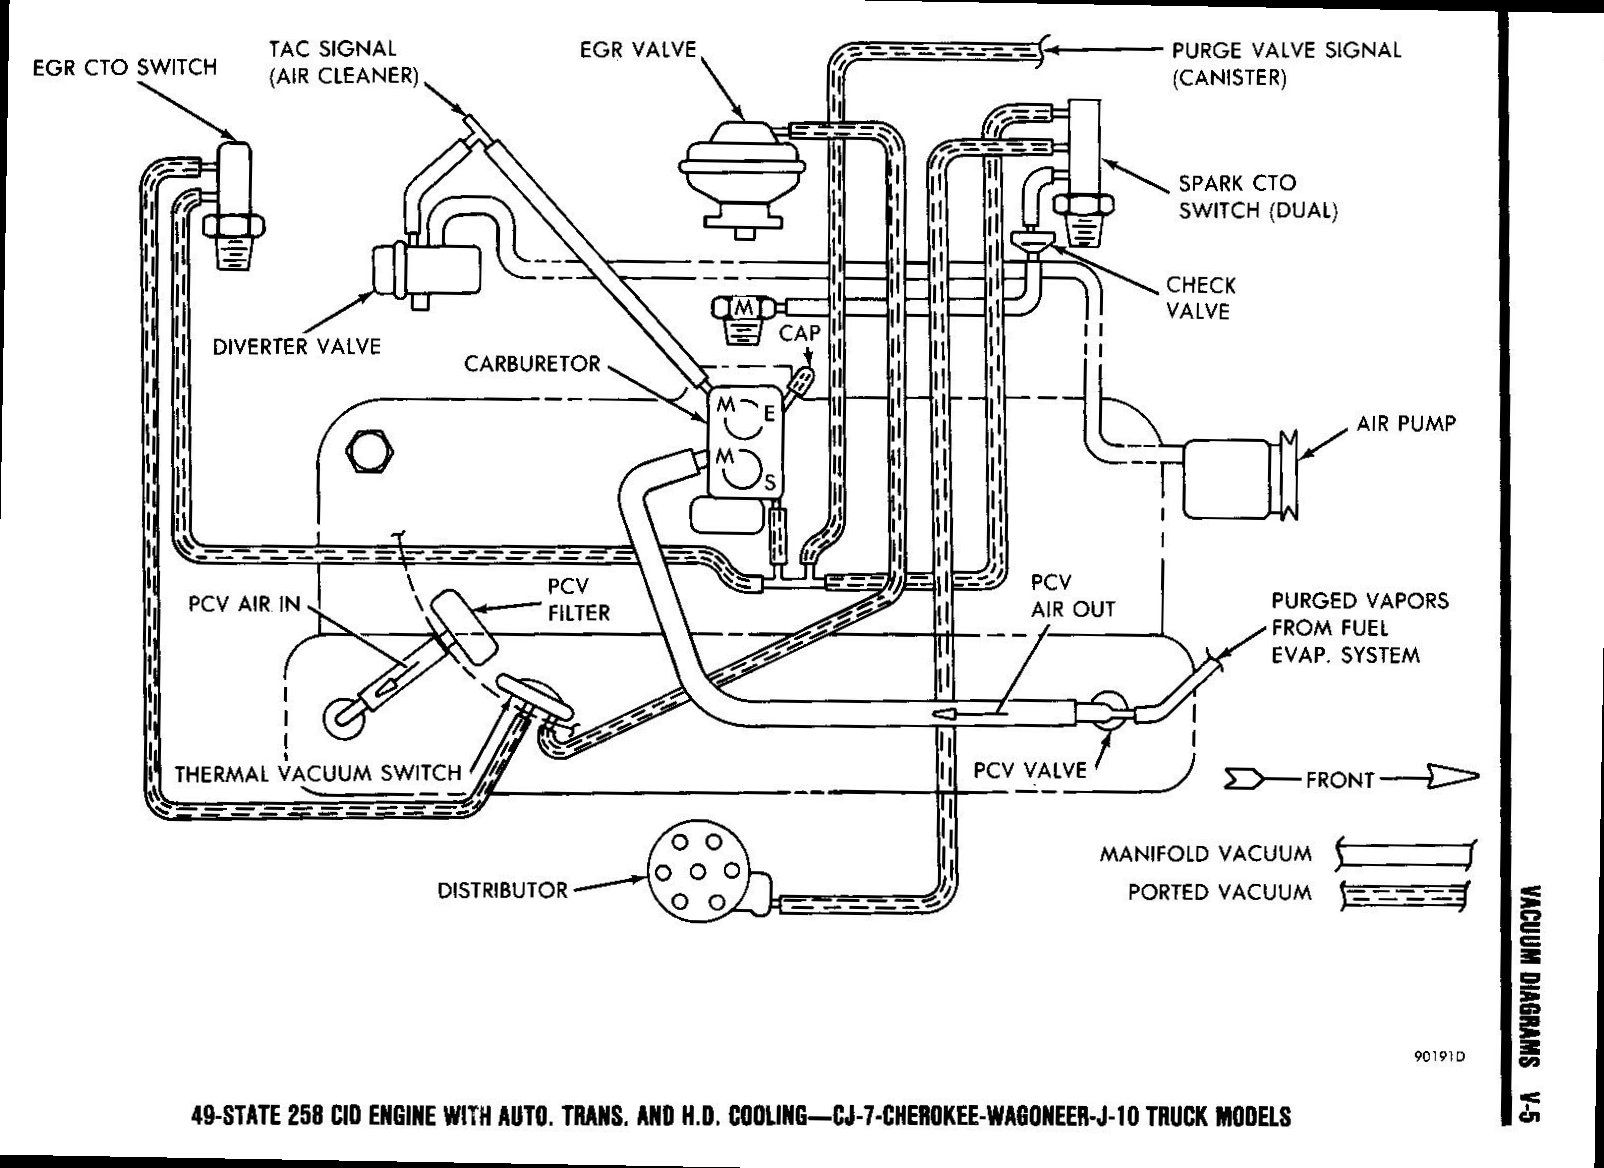 jeep cj5 engine diagram wiring diagram list 1985 jeep cj7 engine wiring diagram jeep cj5 4 [ 1604 x 1168 Pixel ]